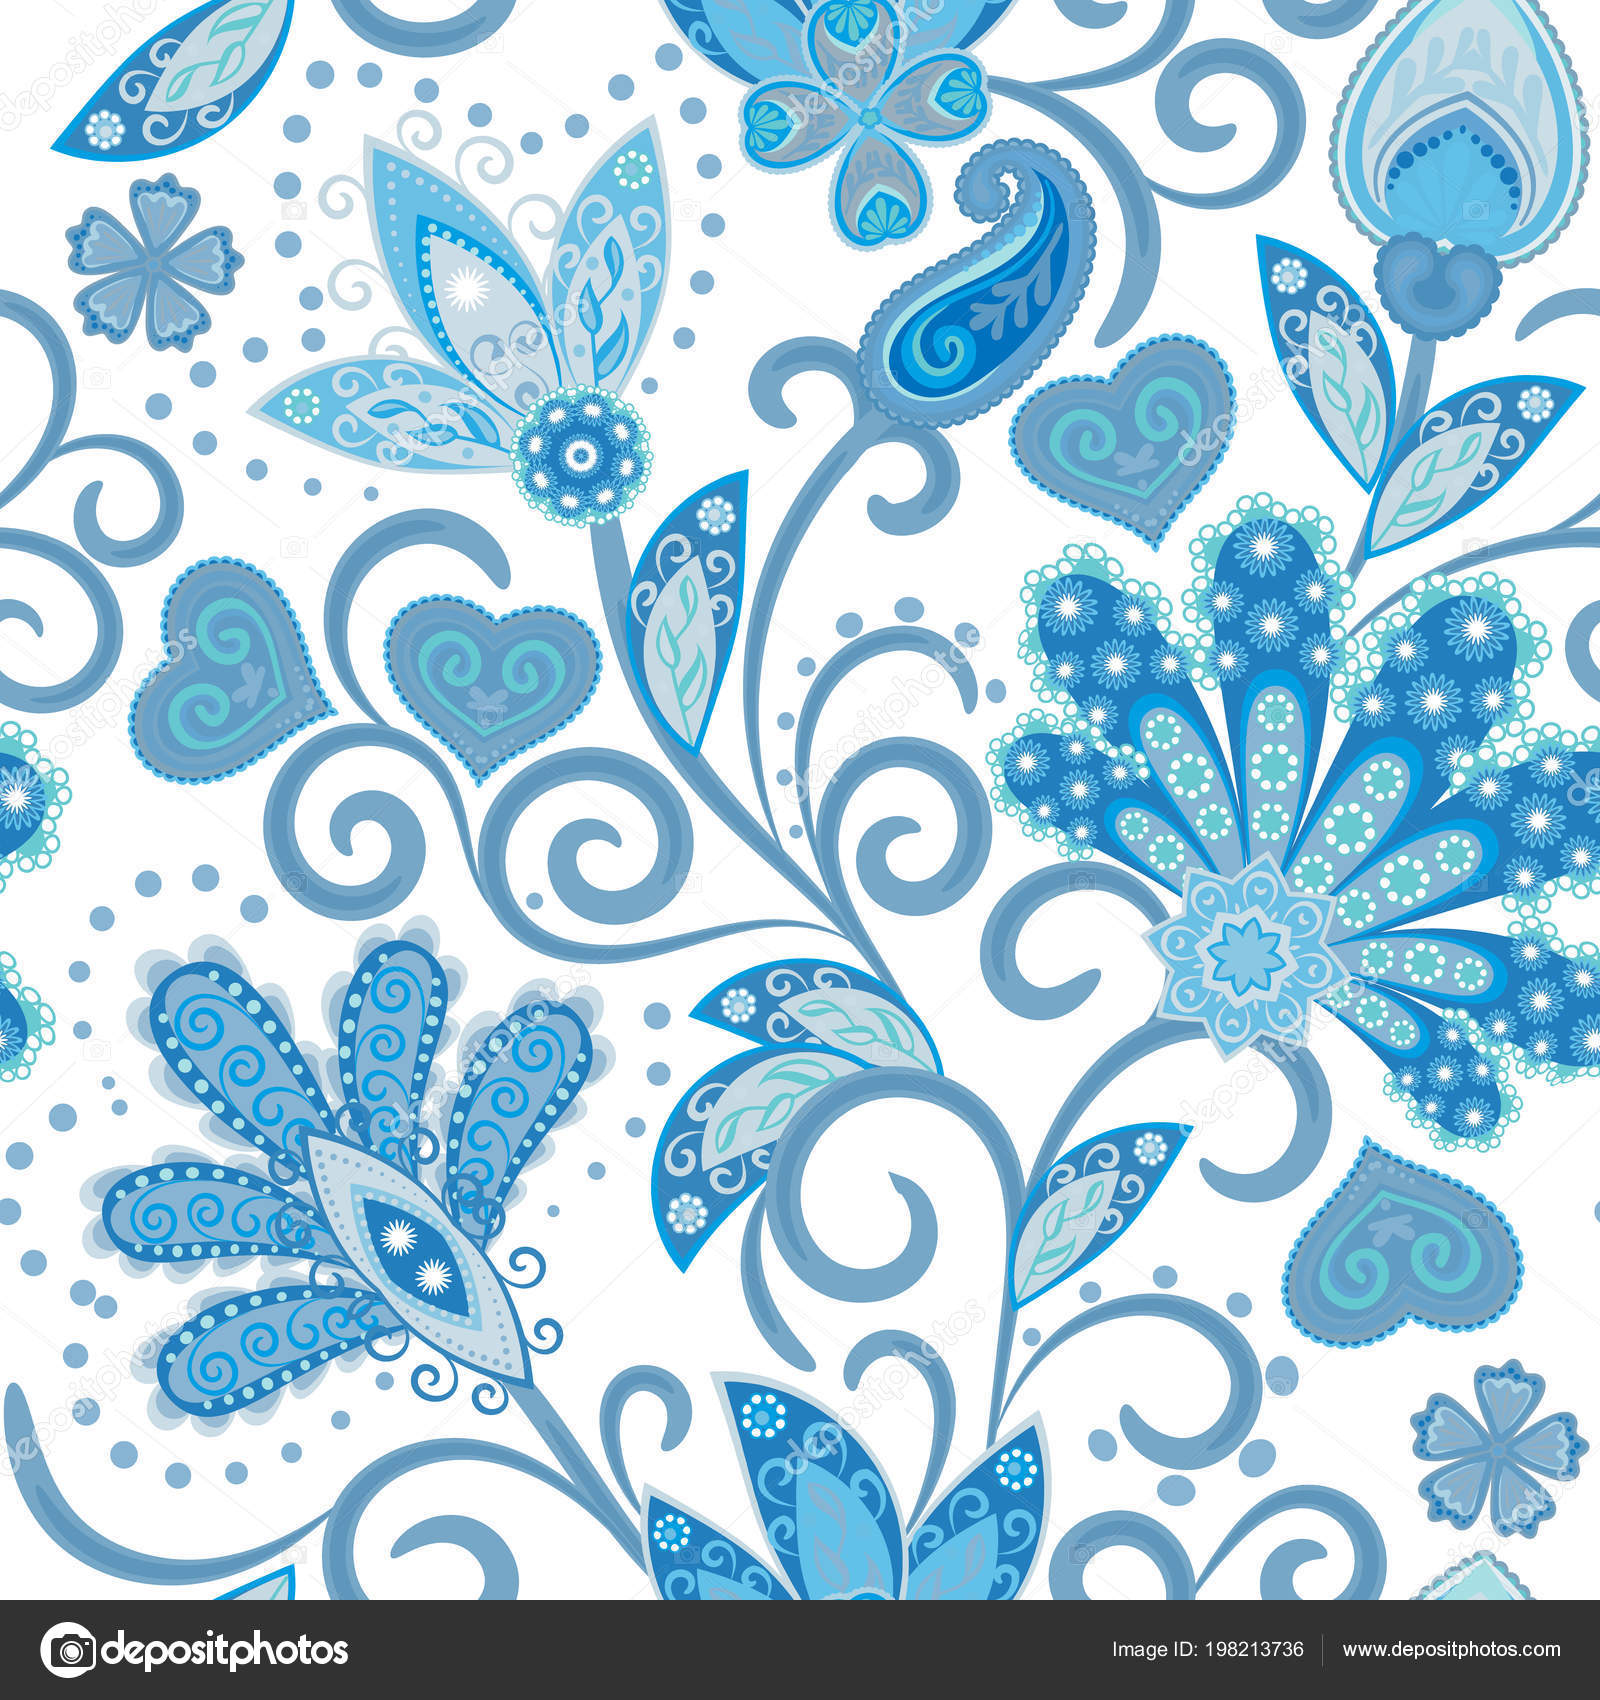 27+ High Resolution Background Batik Vector